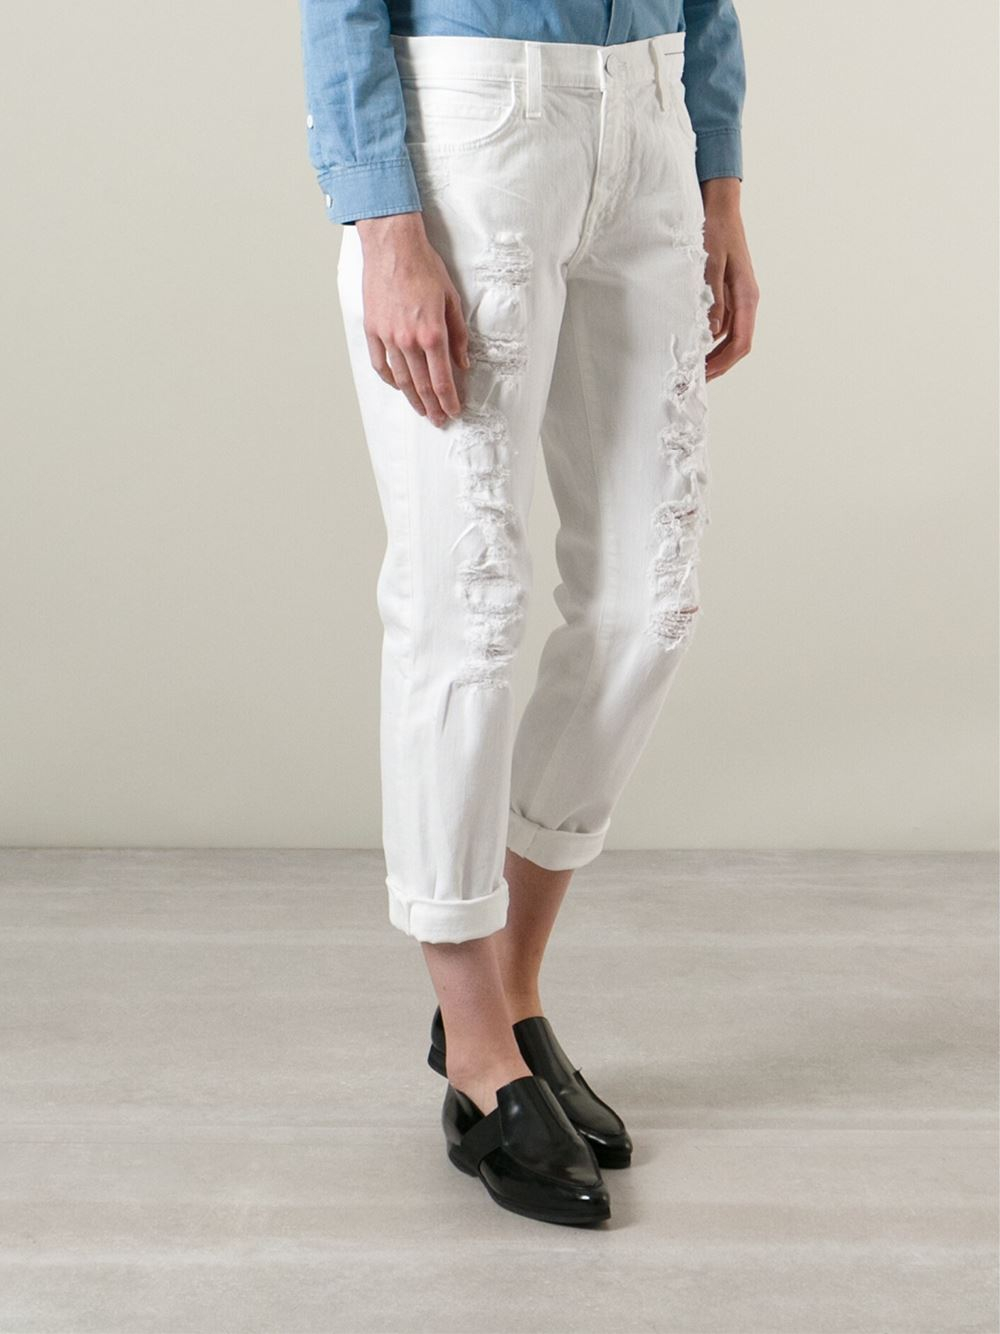 Excellent Lips Torn Jeans Women Jeans Pencil Pants And Feetin Jeans From Women